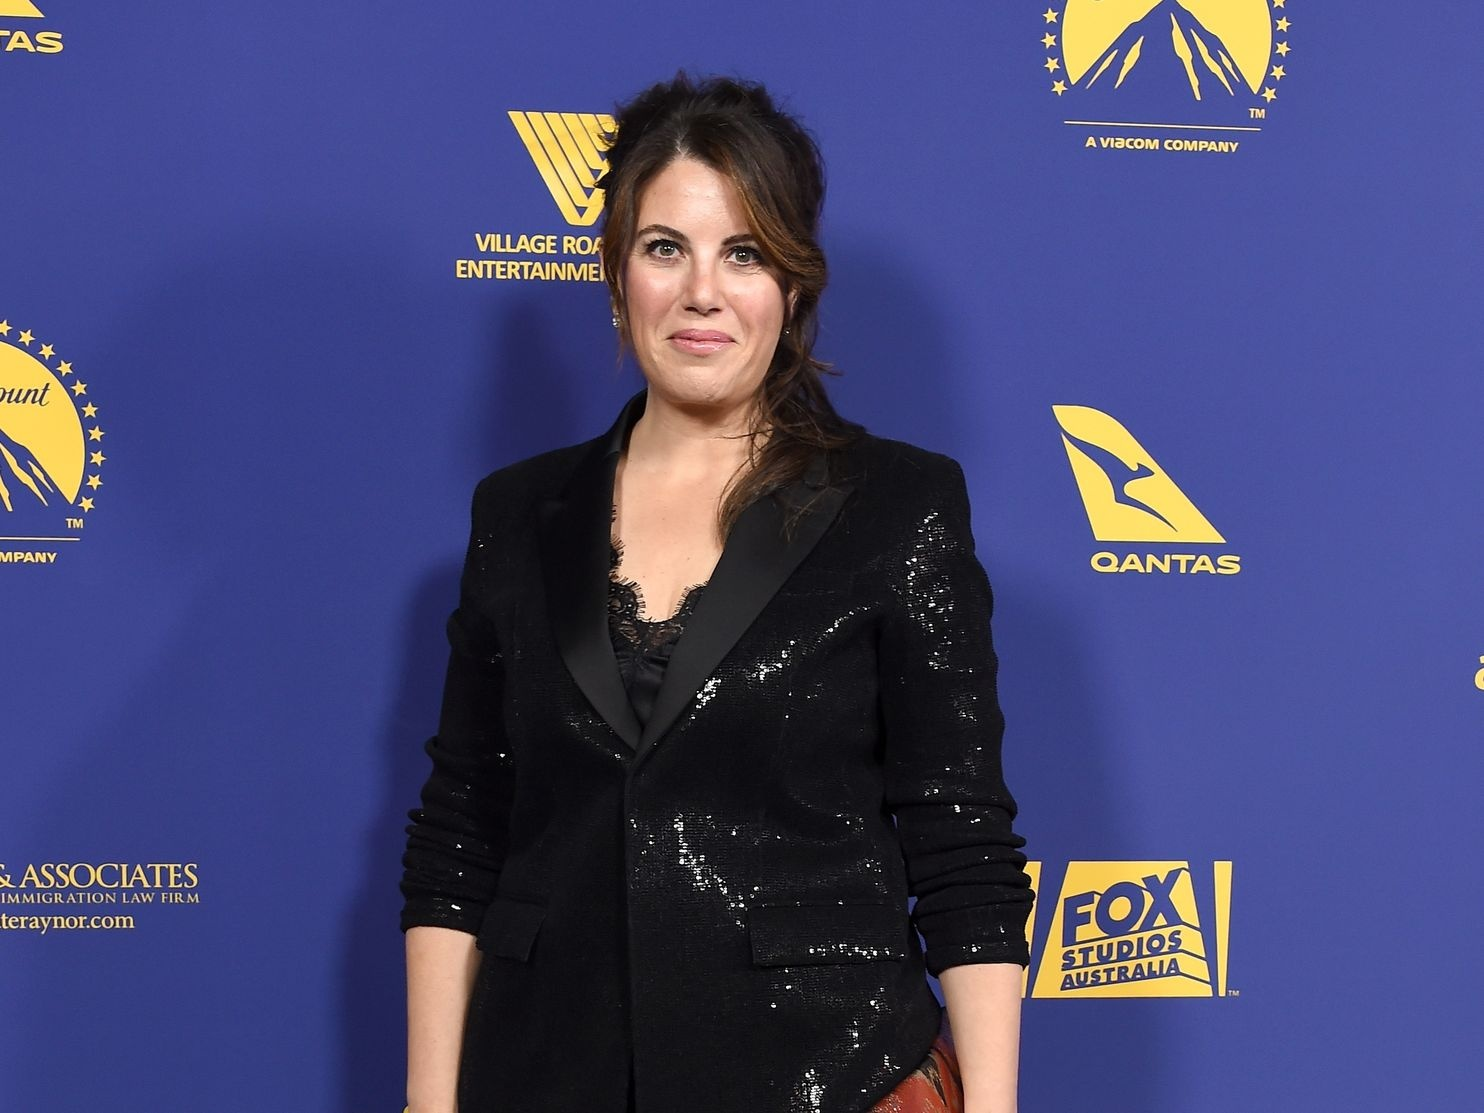 bill-clinton-should-want-to-apologize-monica-lewinsky-opens-up-about-scandal-in-new-documentary